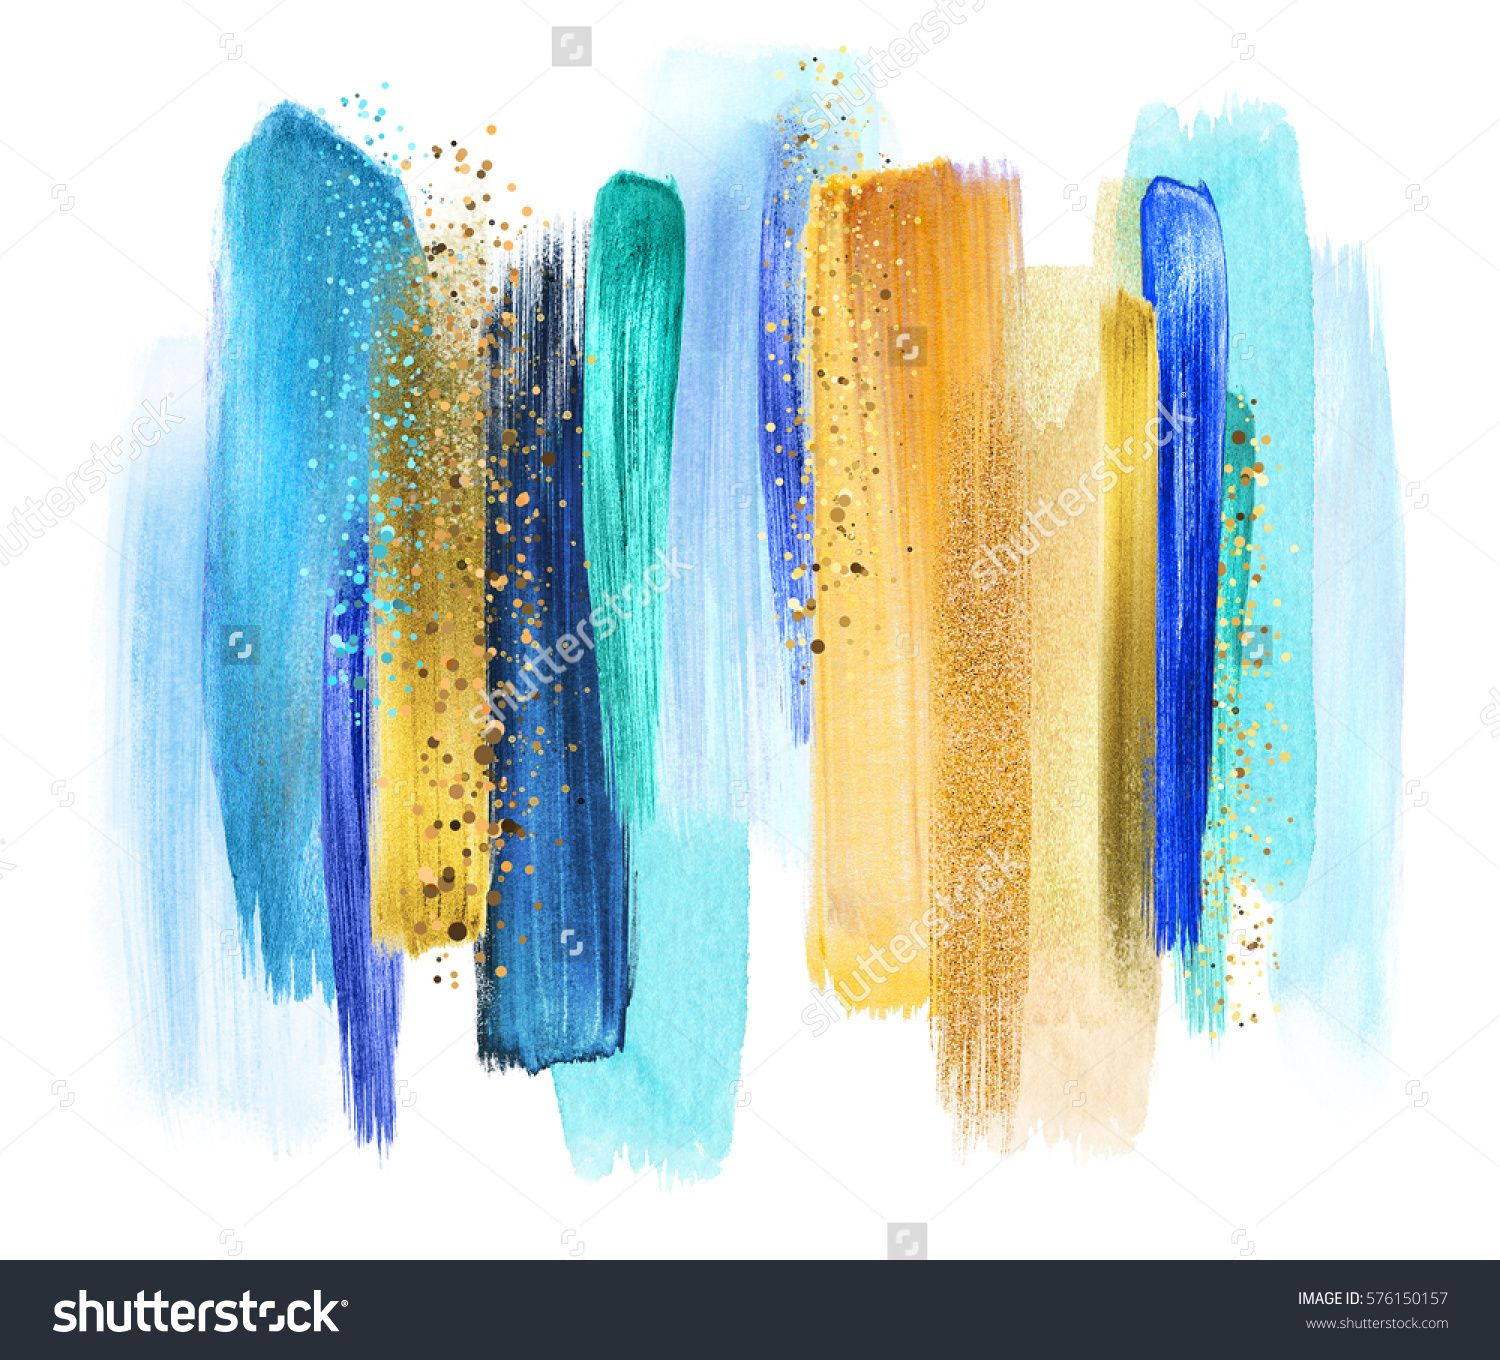 Abstract Watercolor Brush Strokes Creative Illustration Artistic